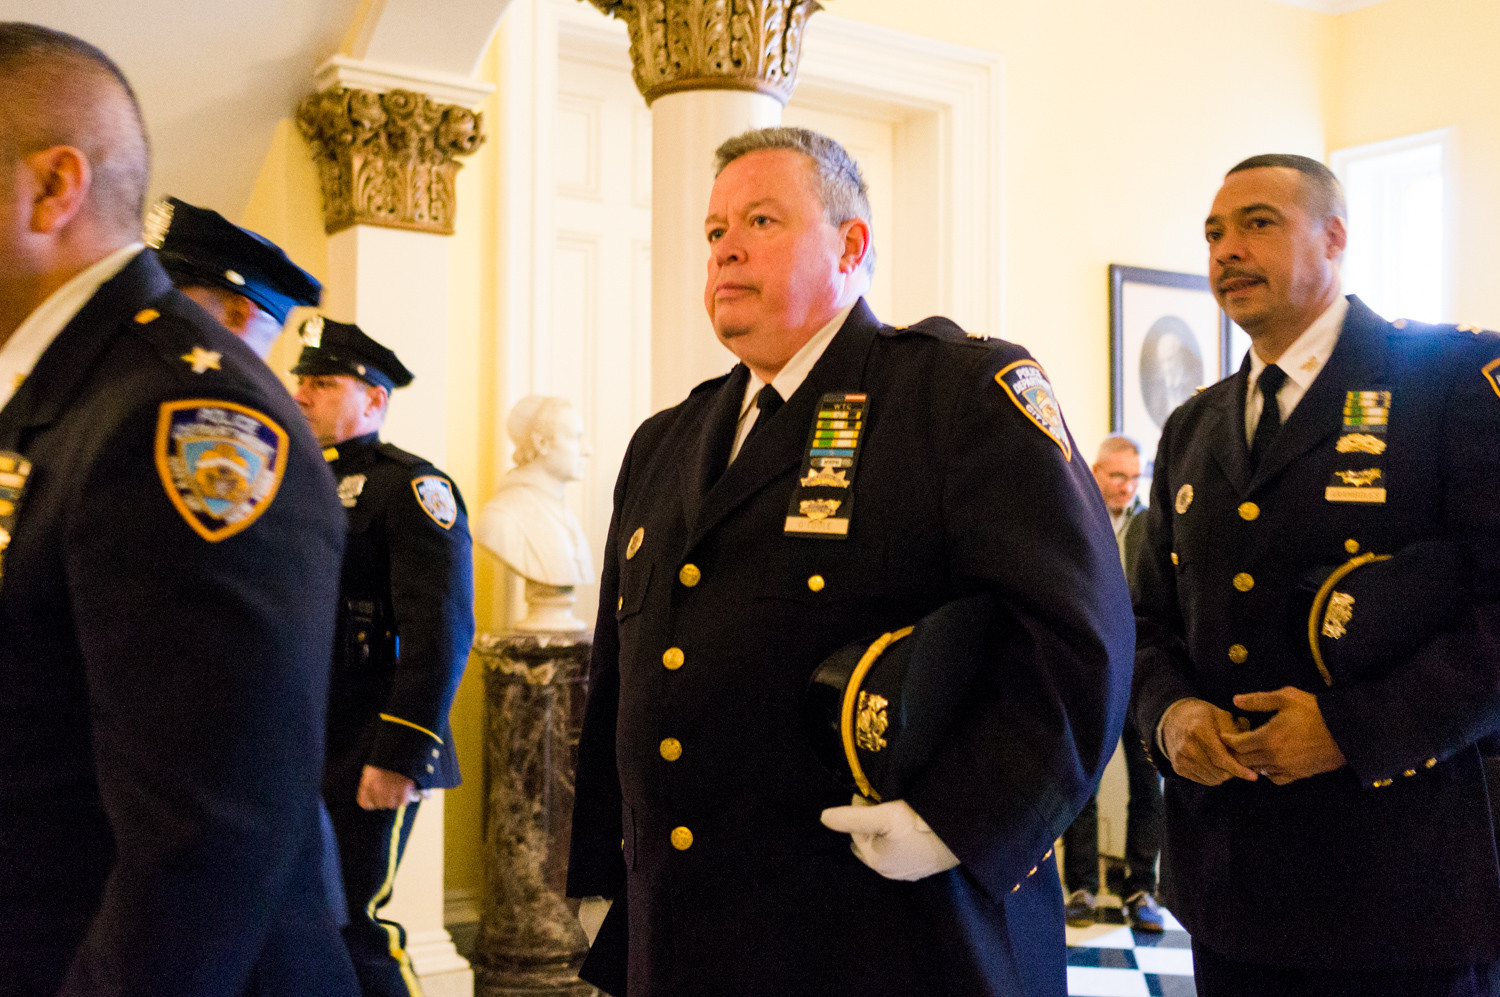 Deputy inspector Terence O'Toole of the 50th Precinct walks into the Chapel of the Immaculate Conception at the College of Mount Saint Vincent for the 20th anniversary memorial Mass for Neil Forster.